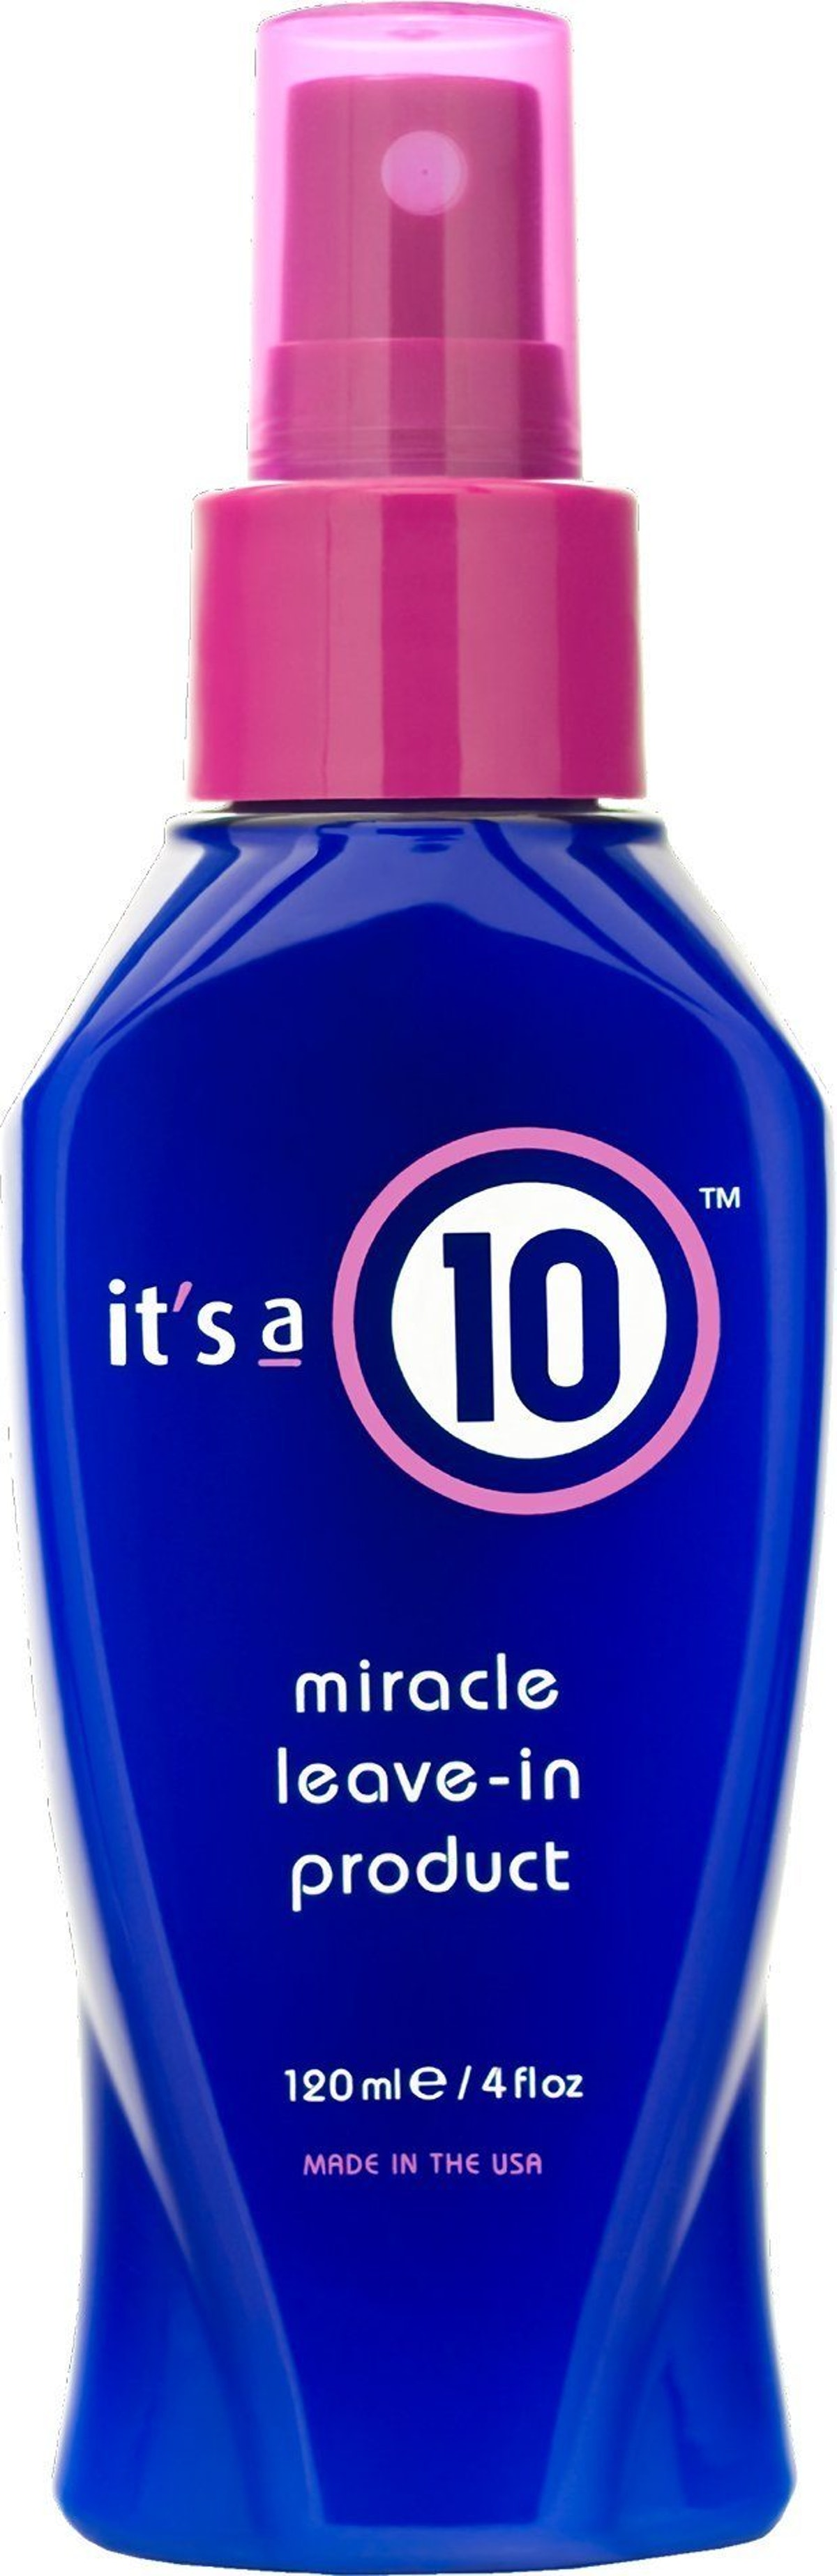 It's A 10 Miracle Leave-In Conditioner Product